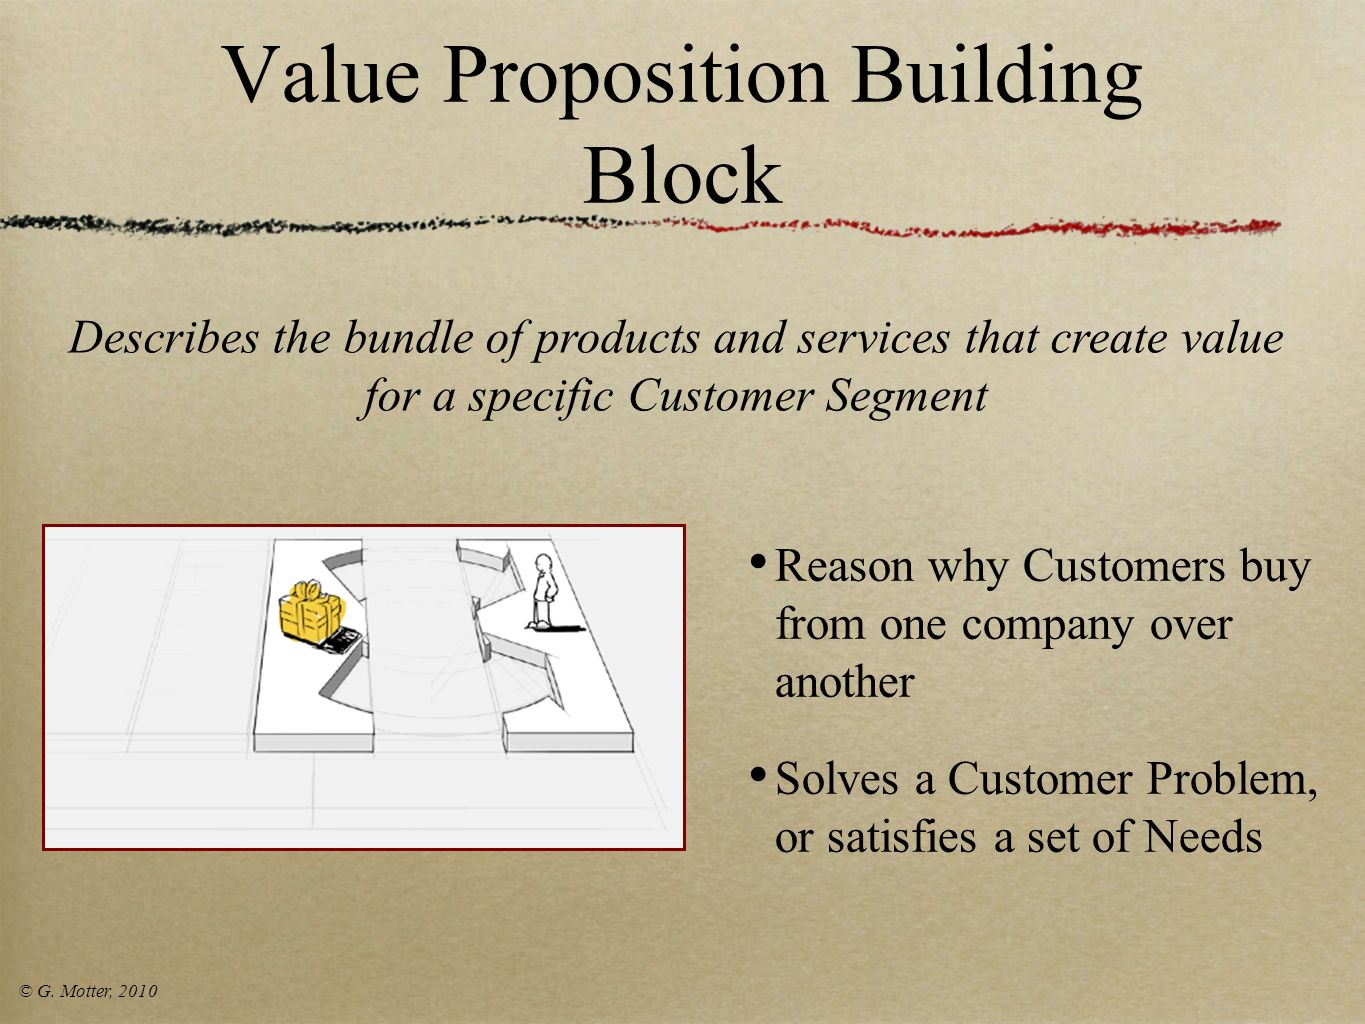 Value Proposition Building Block